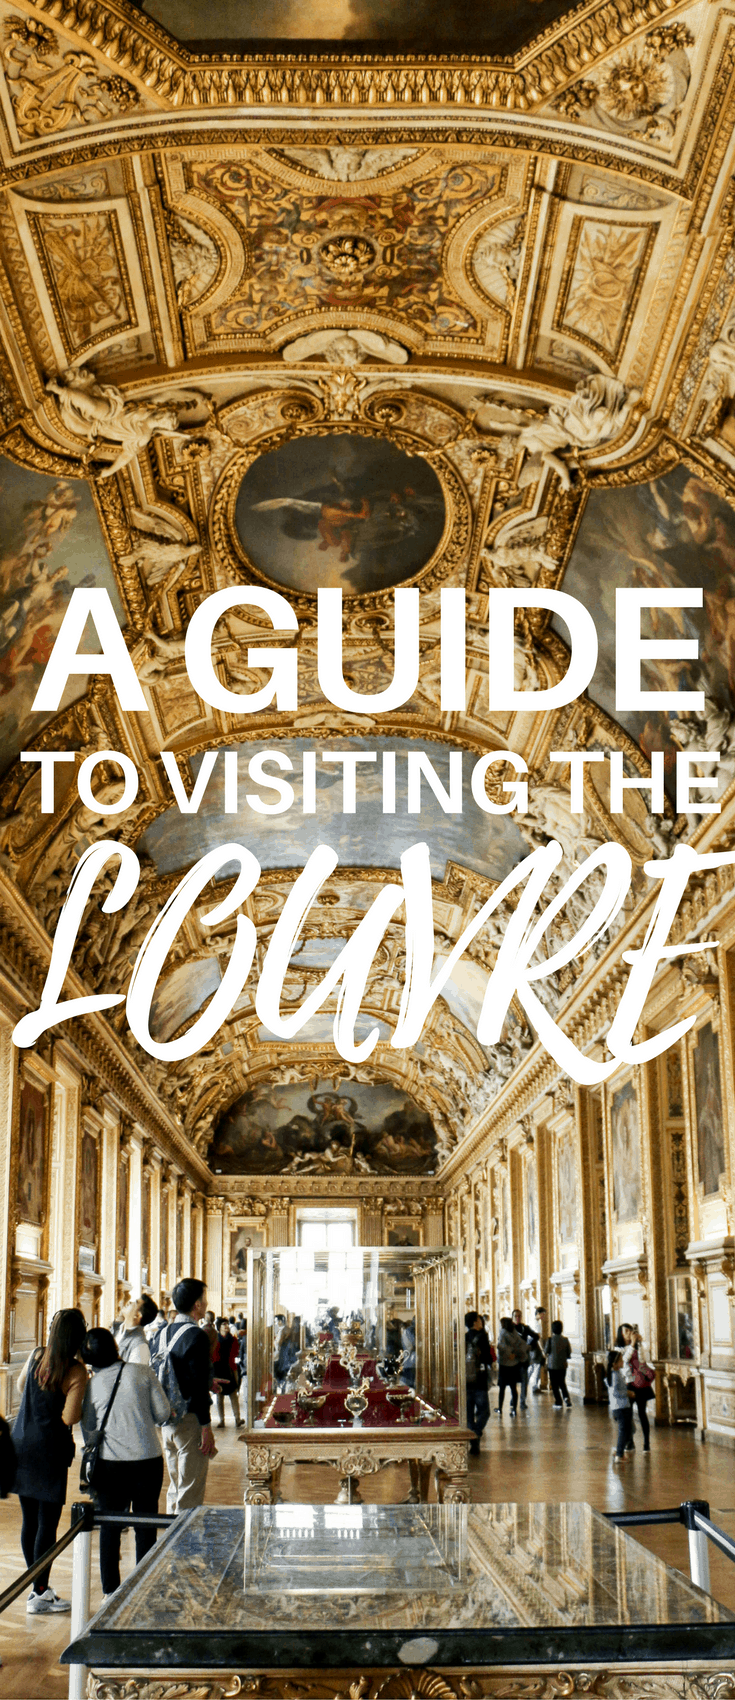 A travel guide to visiting the Louvre museum in Paris. The Louvre is a must-do experience when visiting Paris. Keep reading for tips on how to skip the line, see the Mona Lisa and avoid the crowds.